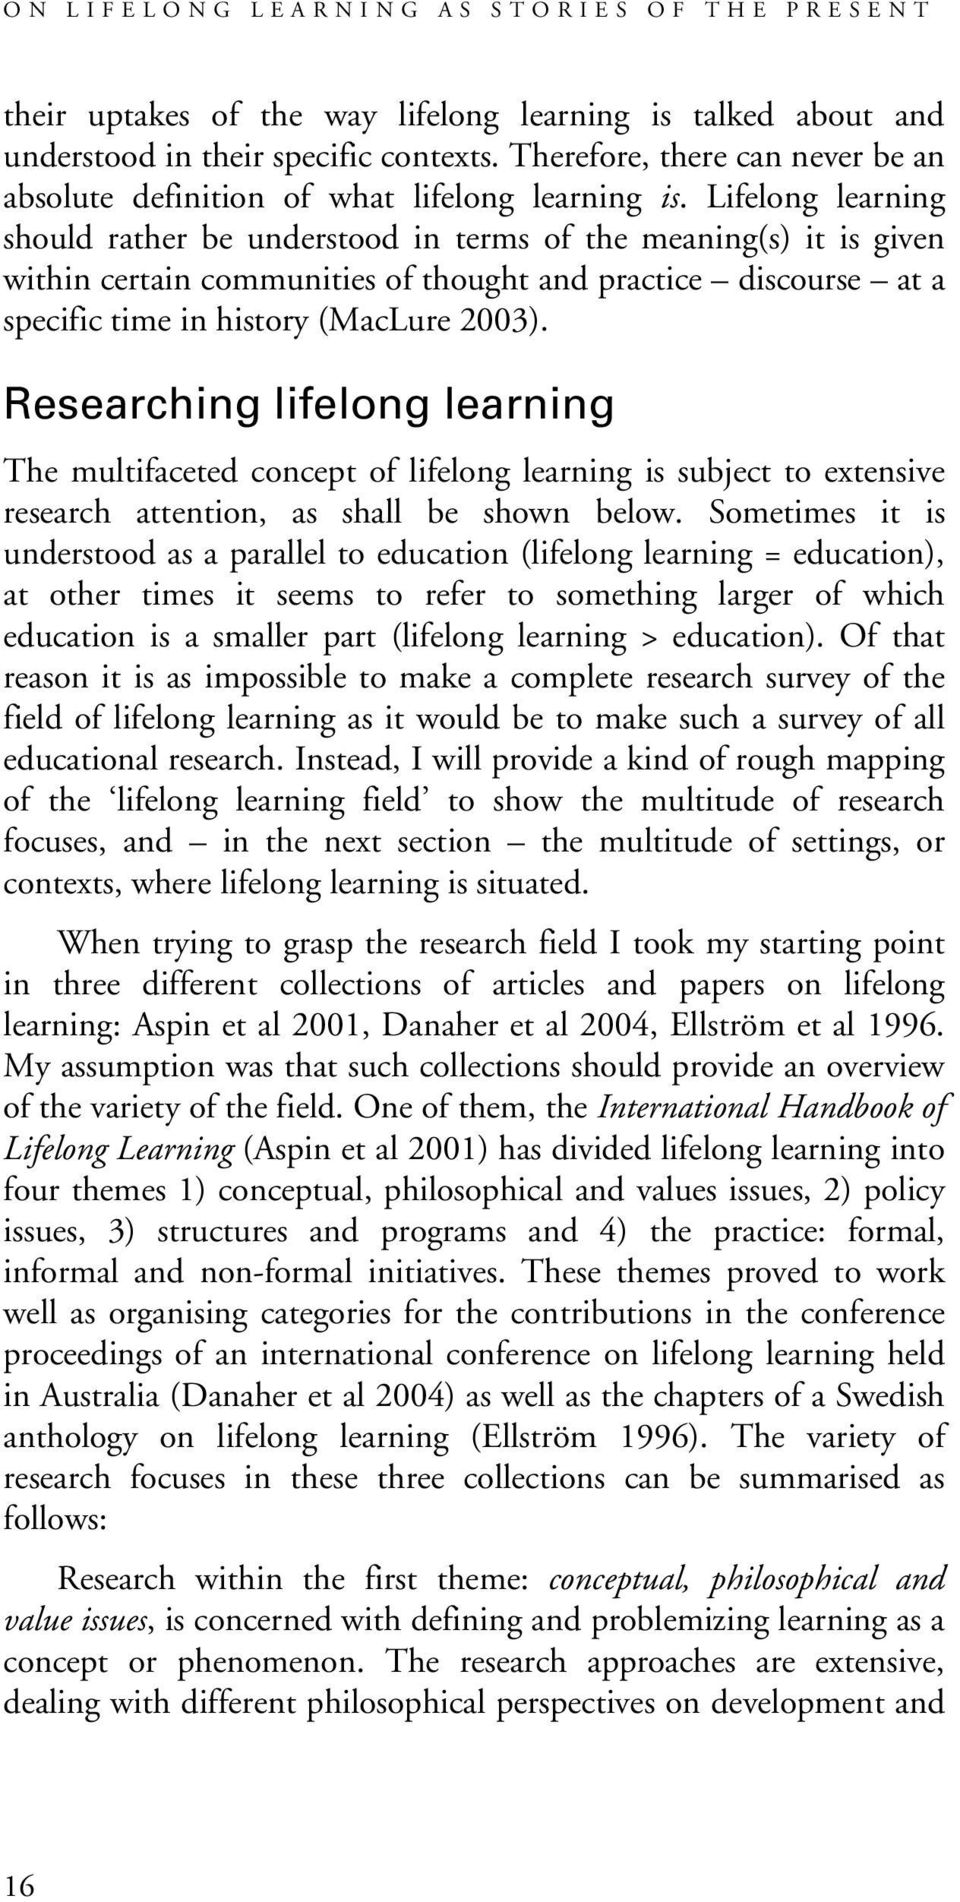 Lifelong learning should rather be understood in terms of the meaning(s) it is given within certain communities of thought and practice discourse at a specific time in history (MacLure 2003).